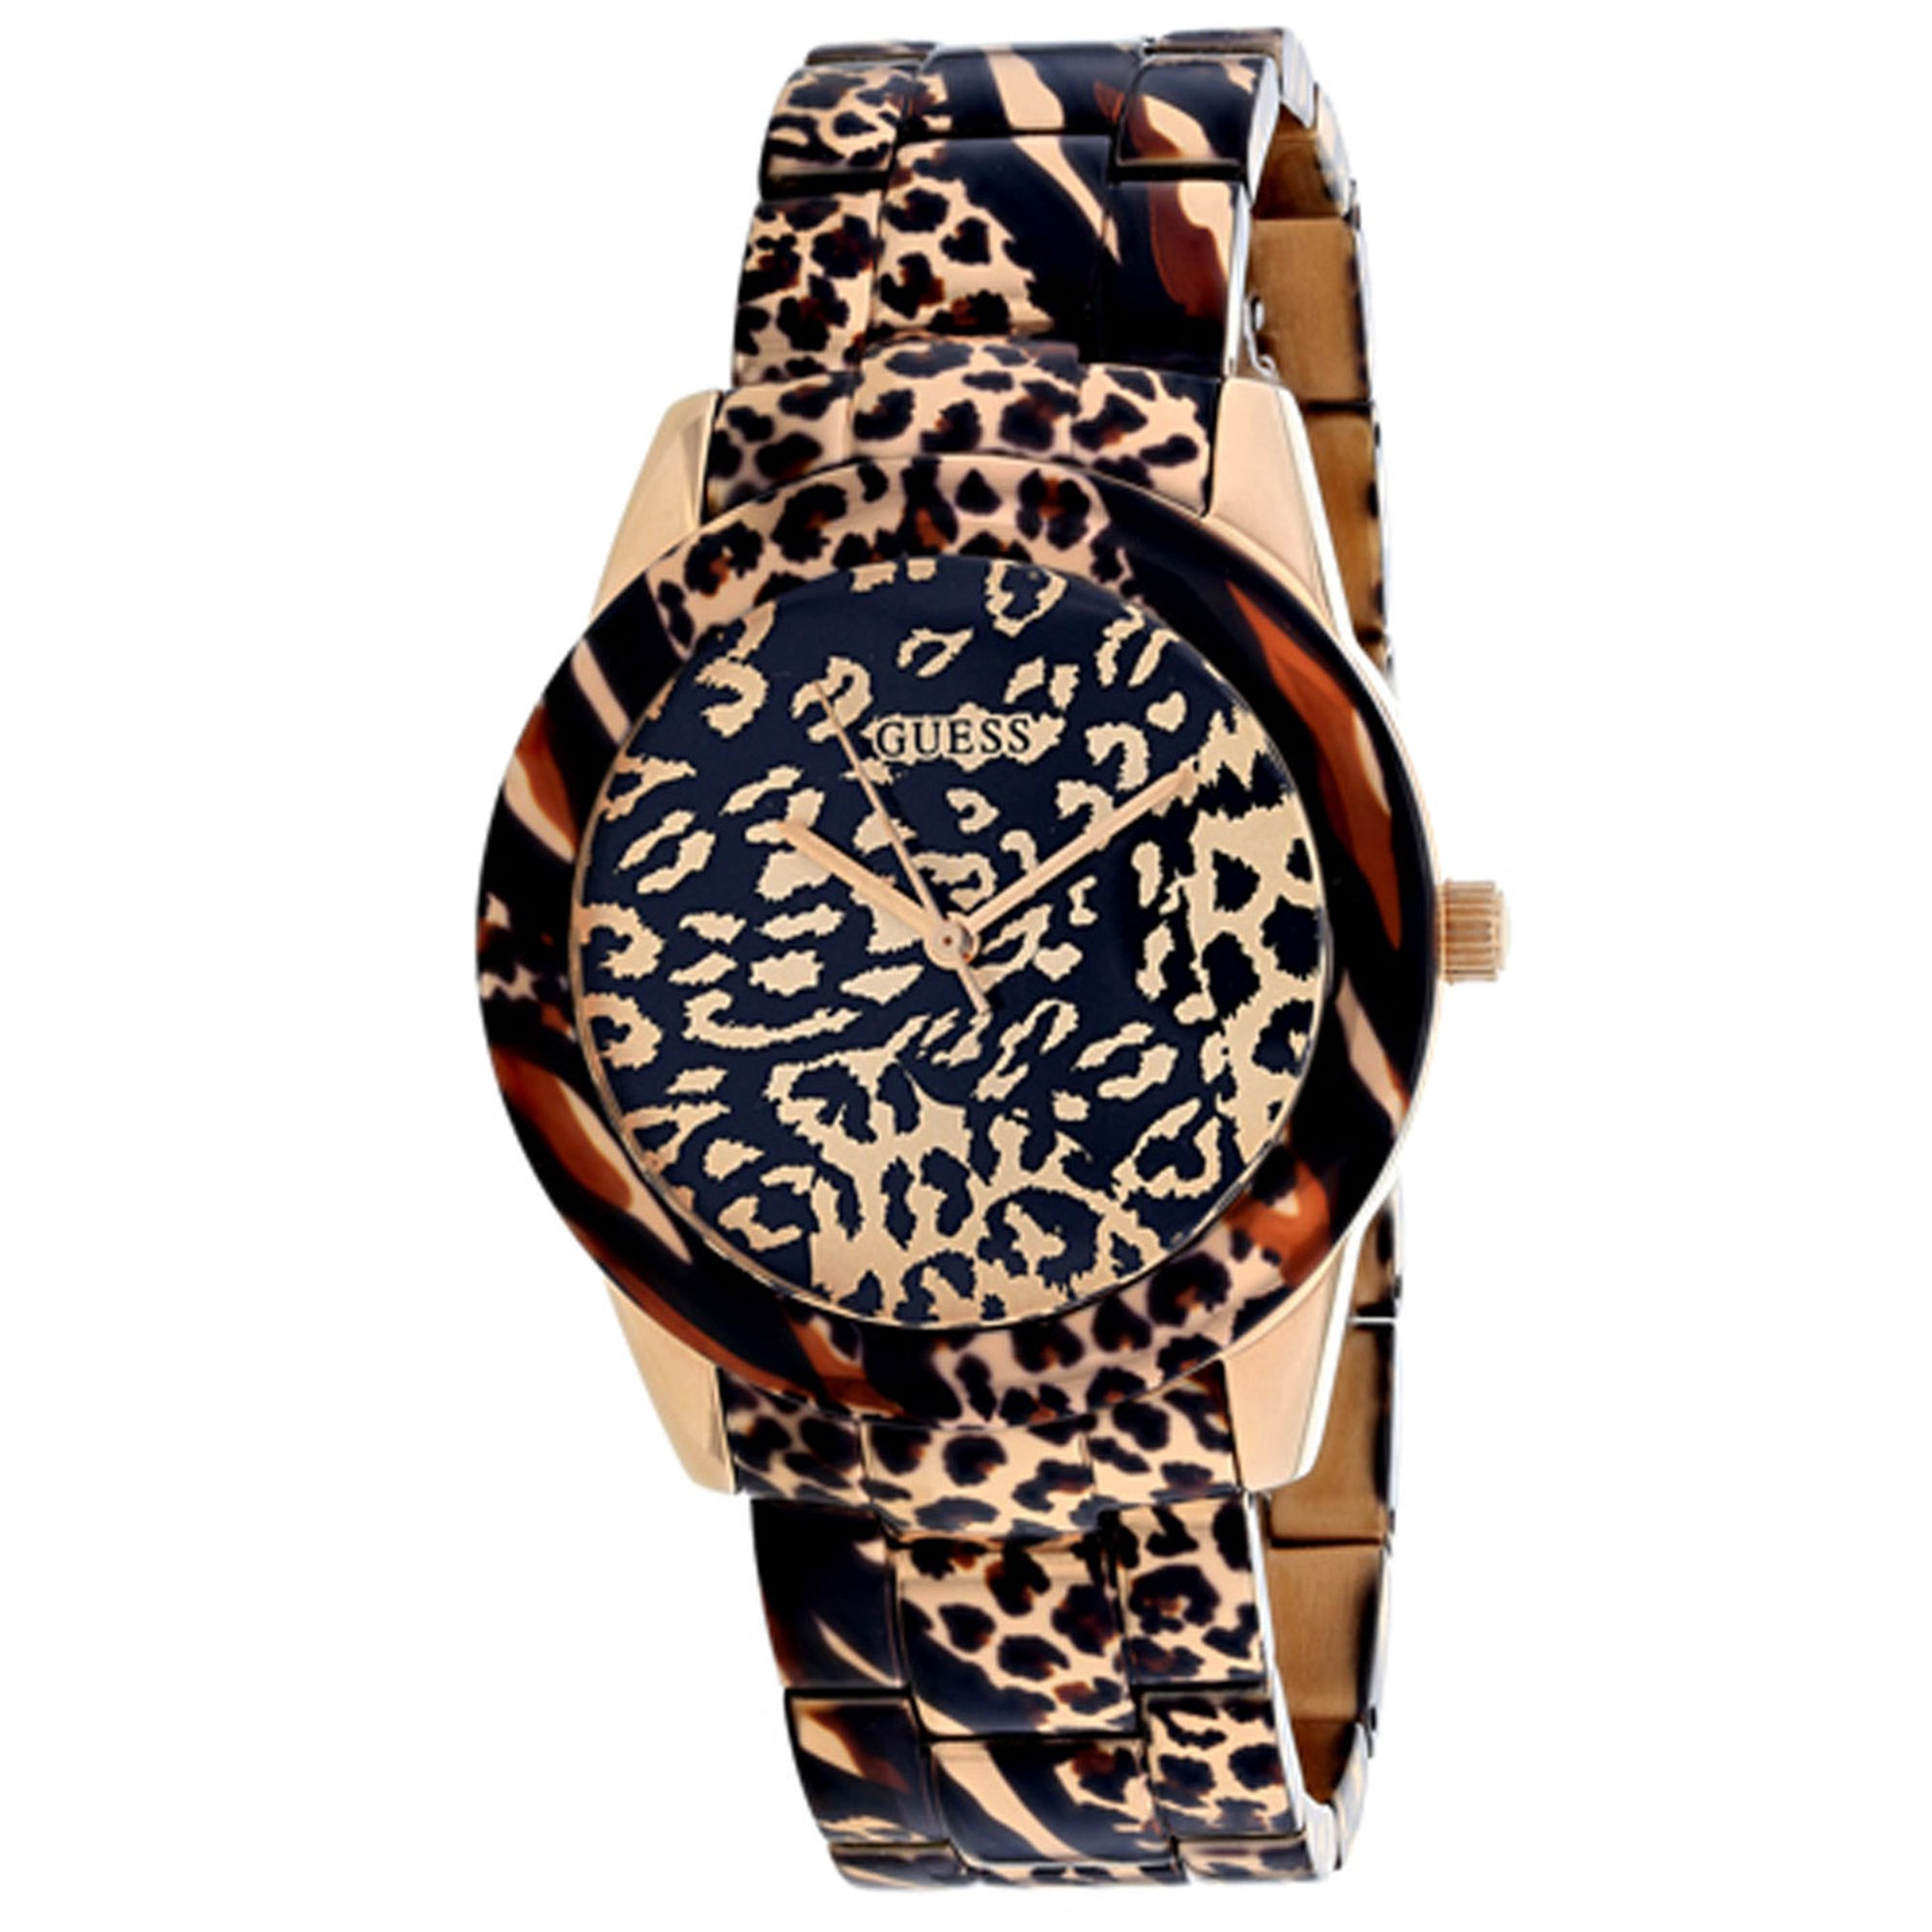 Guess Women S Classic Watch In Rose Gold And Black